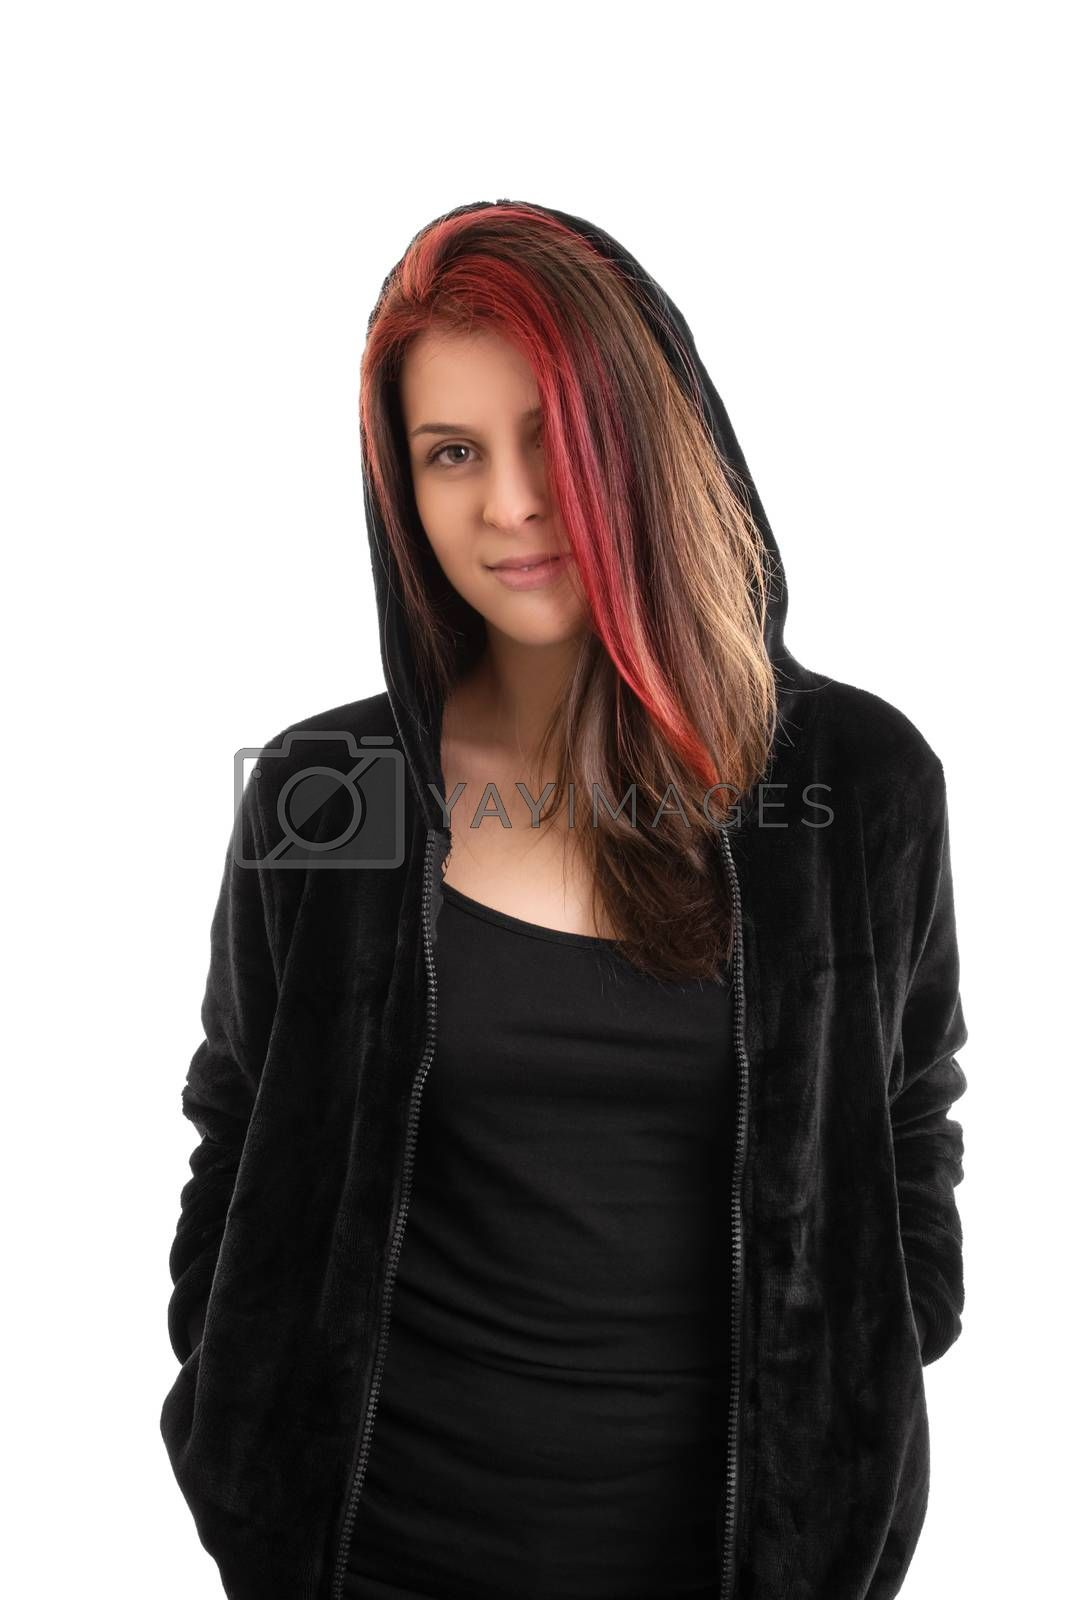 Portrait of a beautiful young girl in a hooded sweatshirt, isolated on white background.